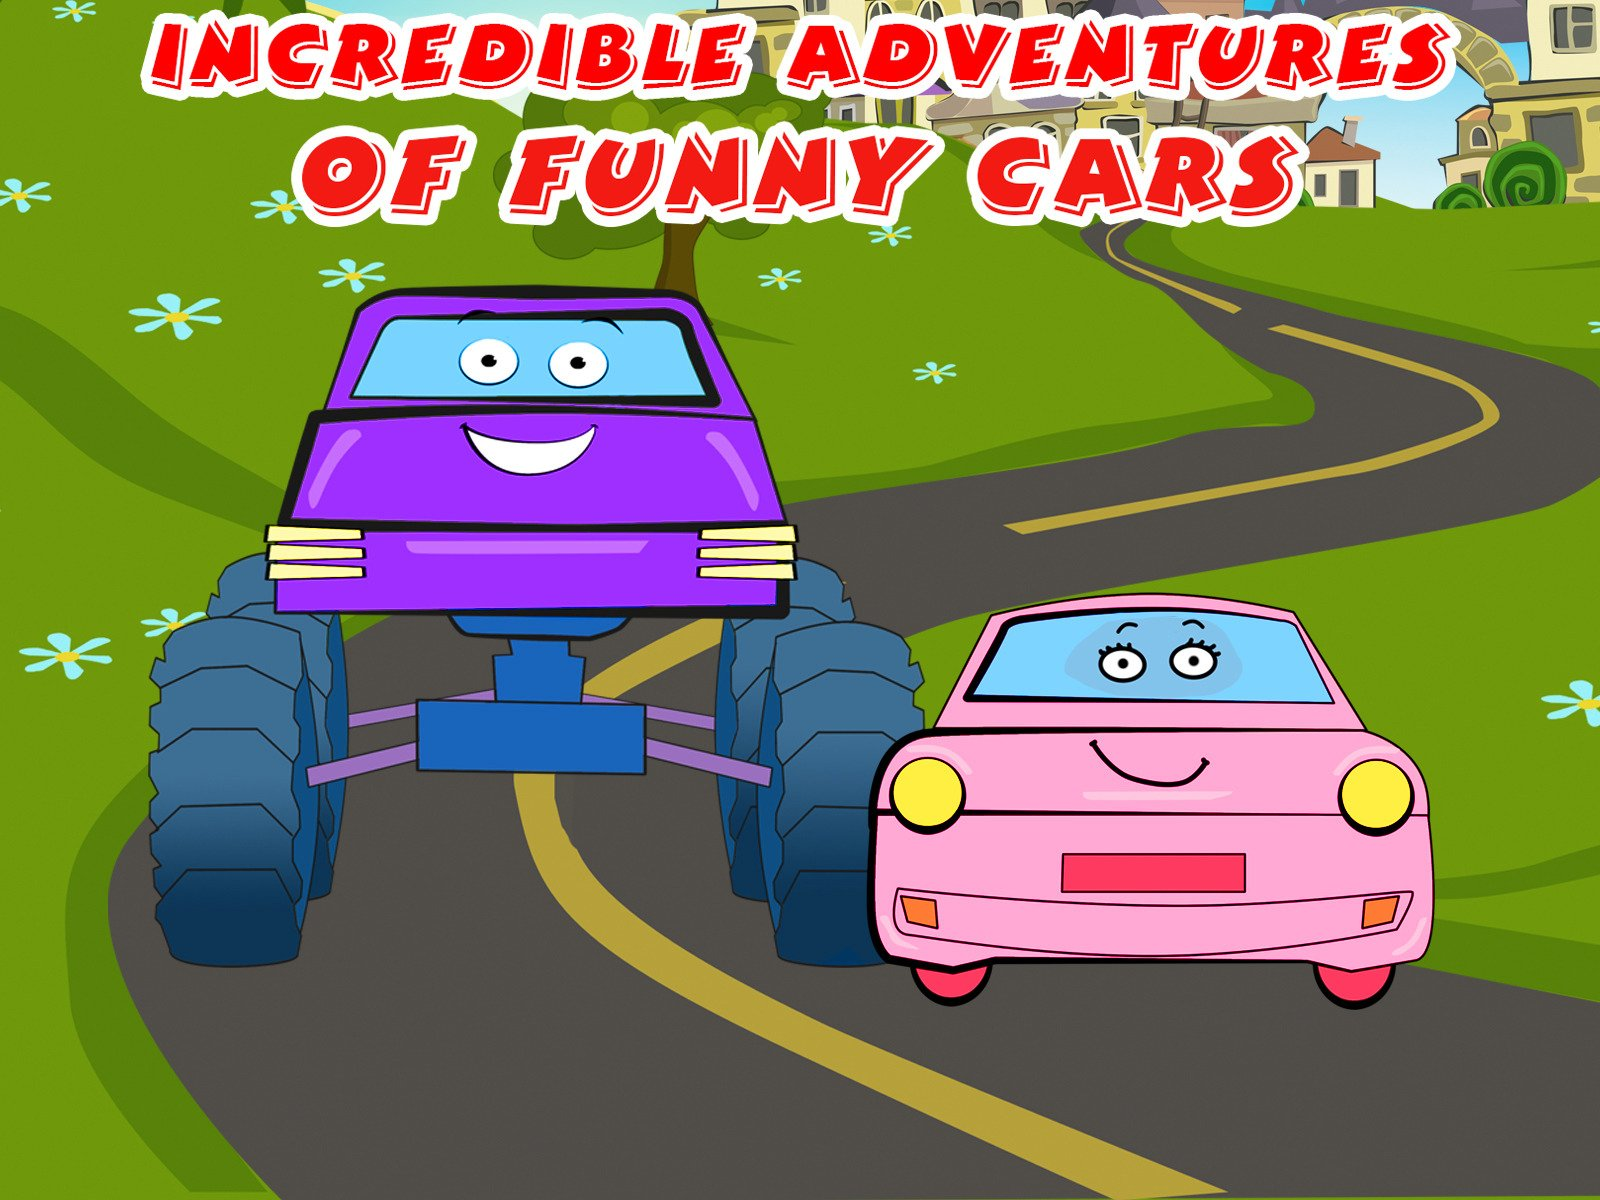 Incredible Adventures of Funny Cars